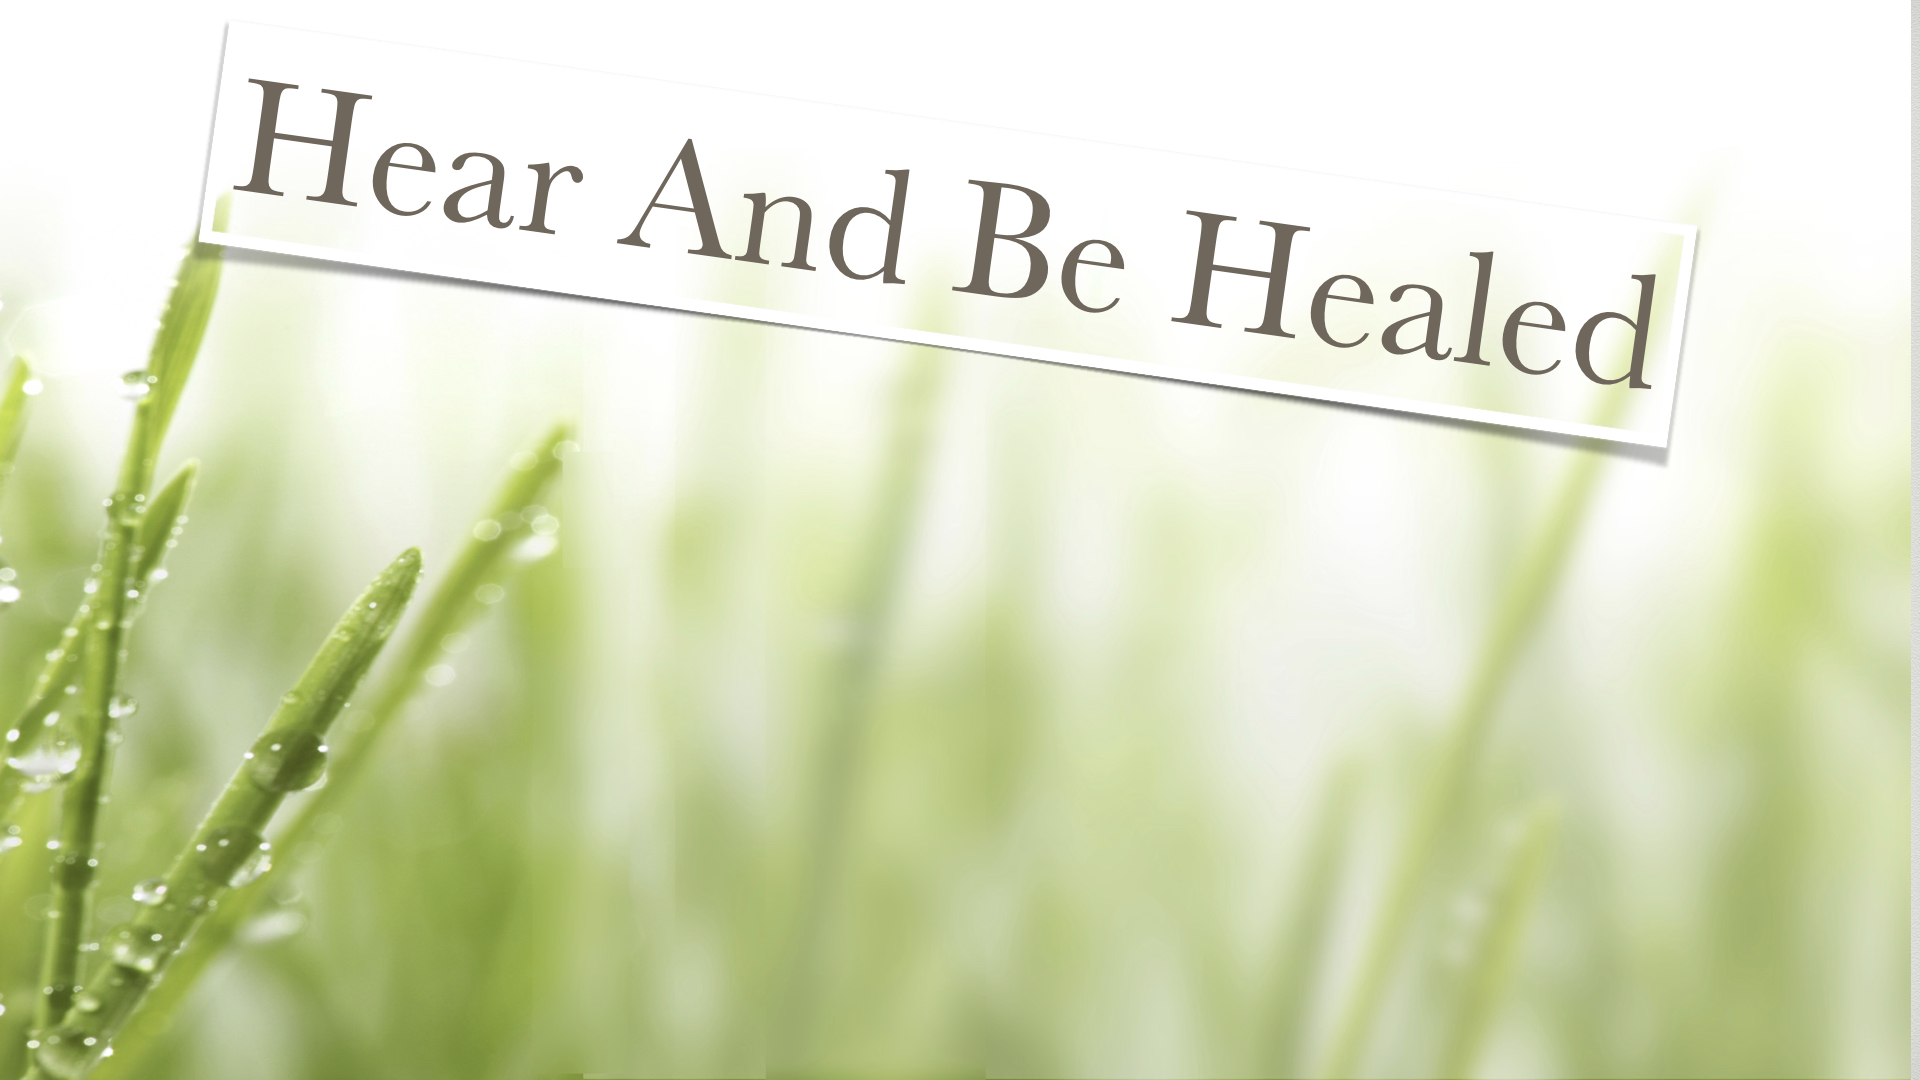 Hear and Be Healed 262019 51515 PM